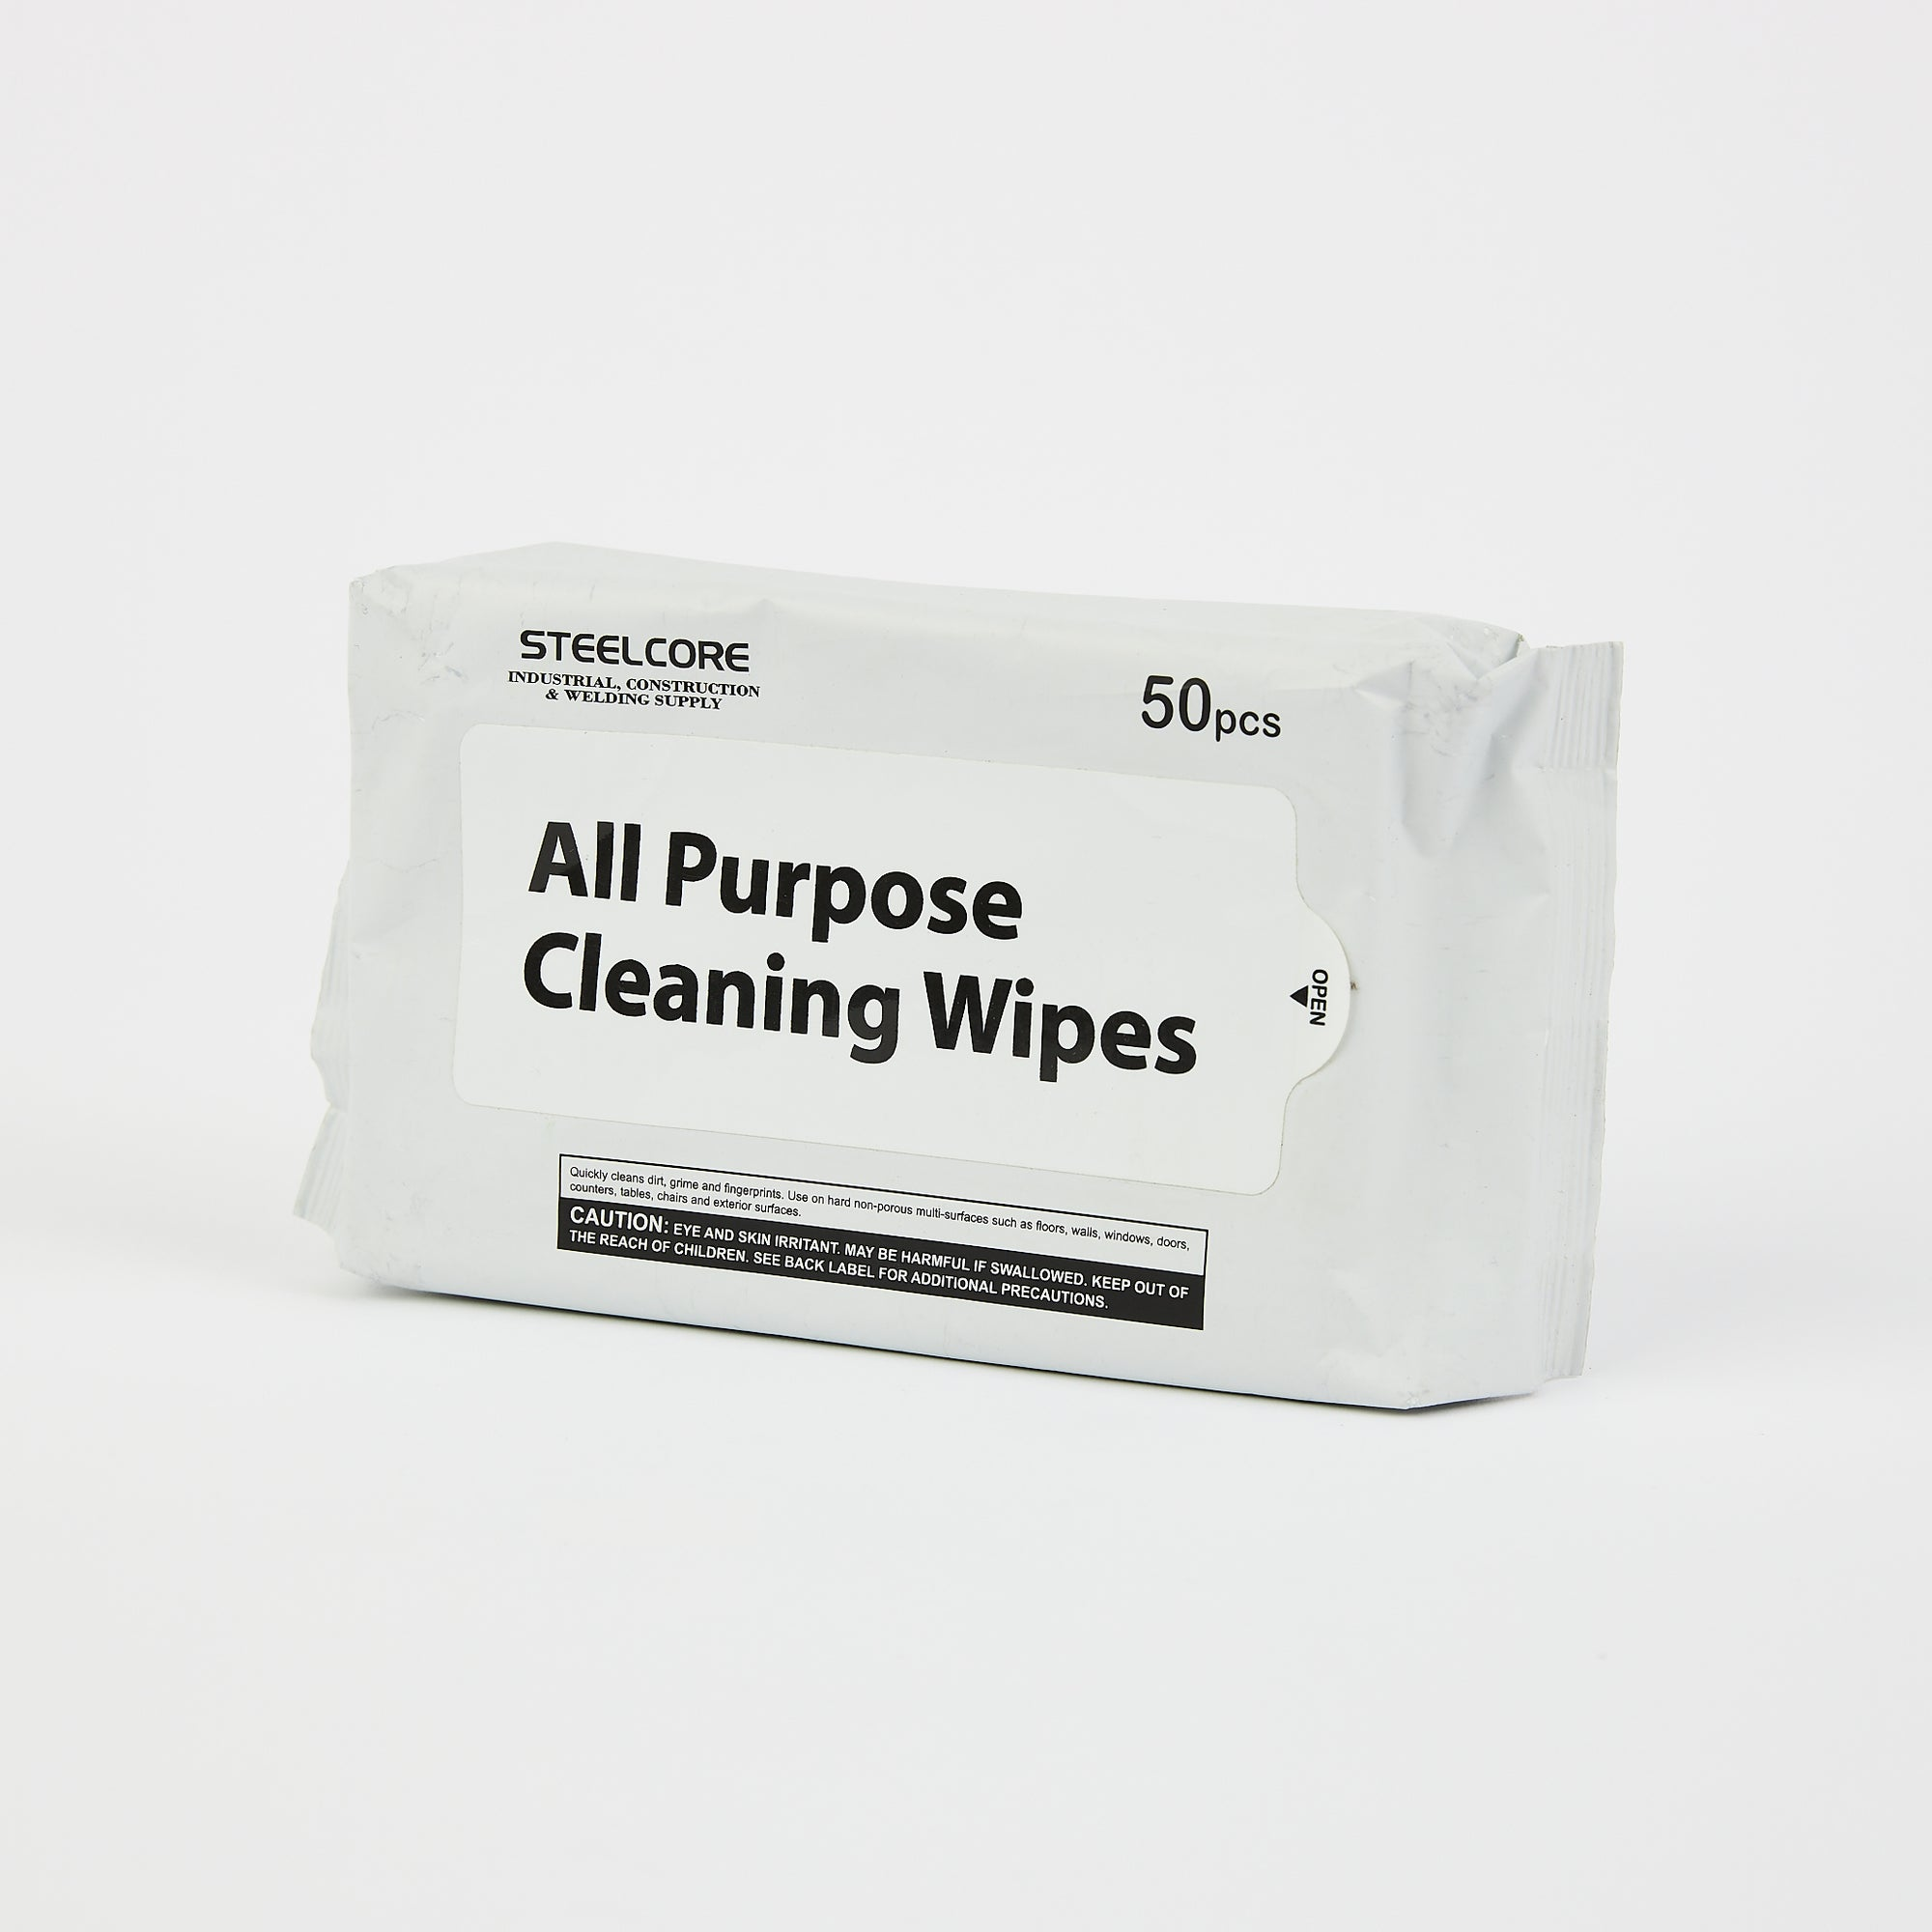 42 Packs of 50 Count All Purpose Cleaning Wipes